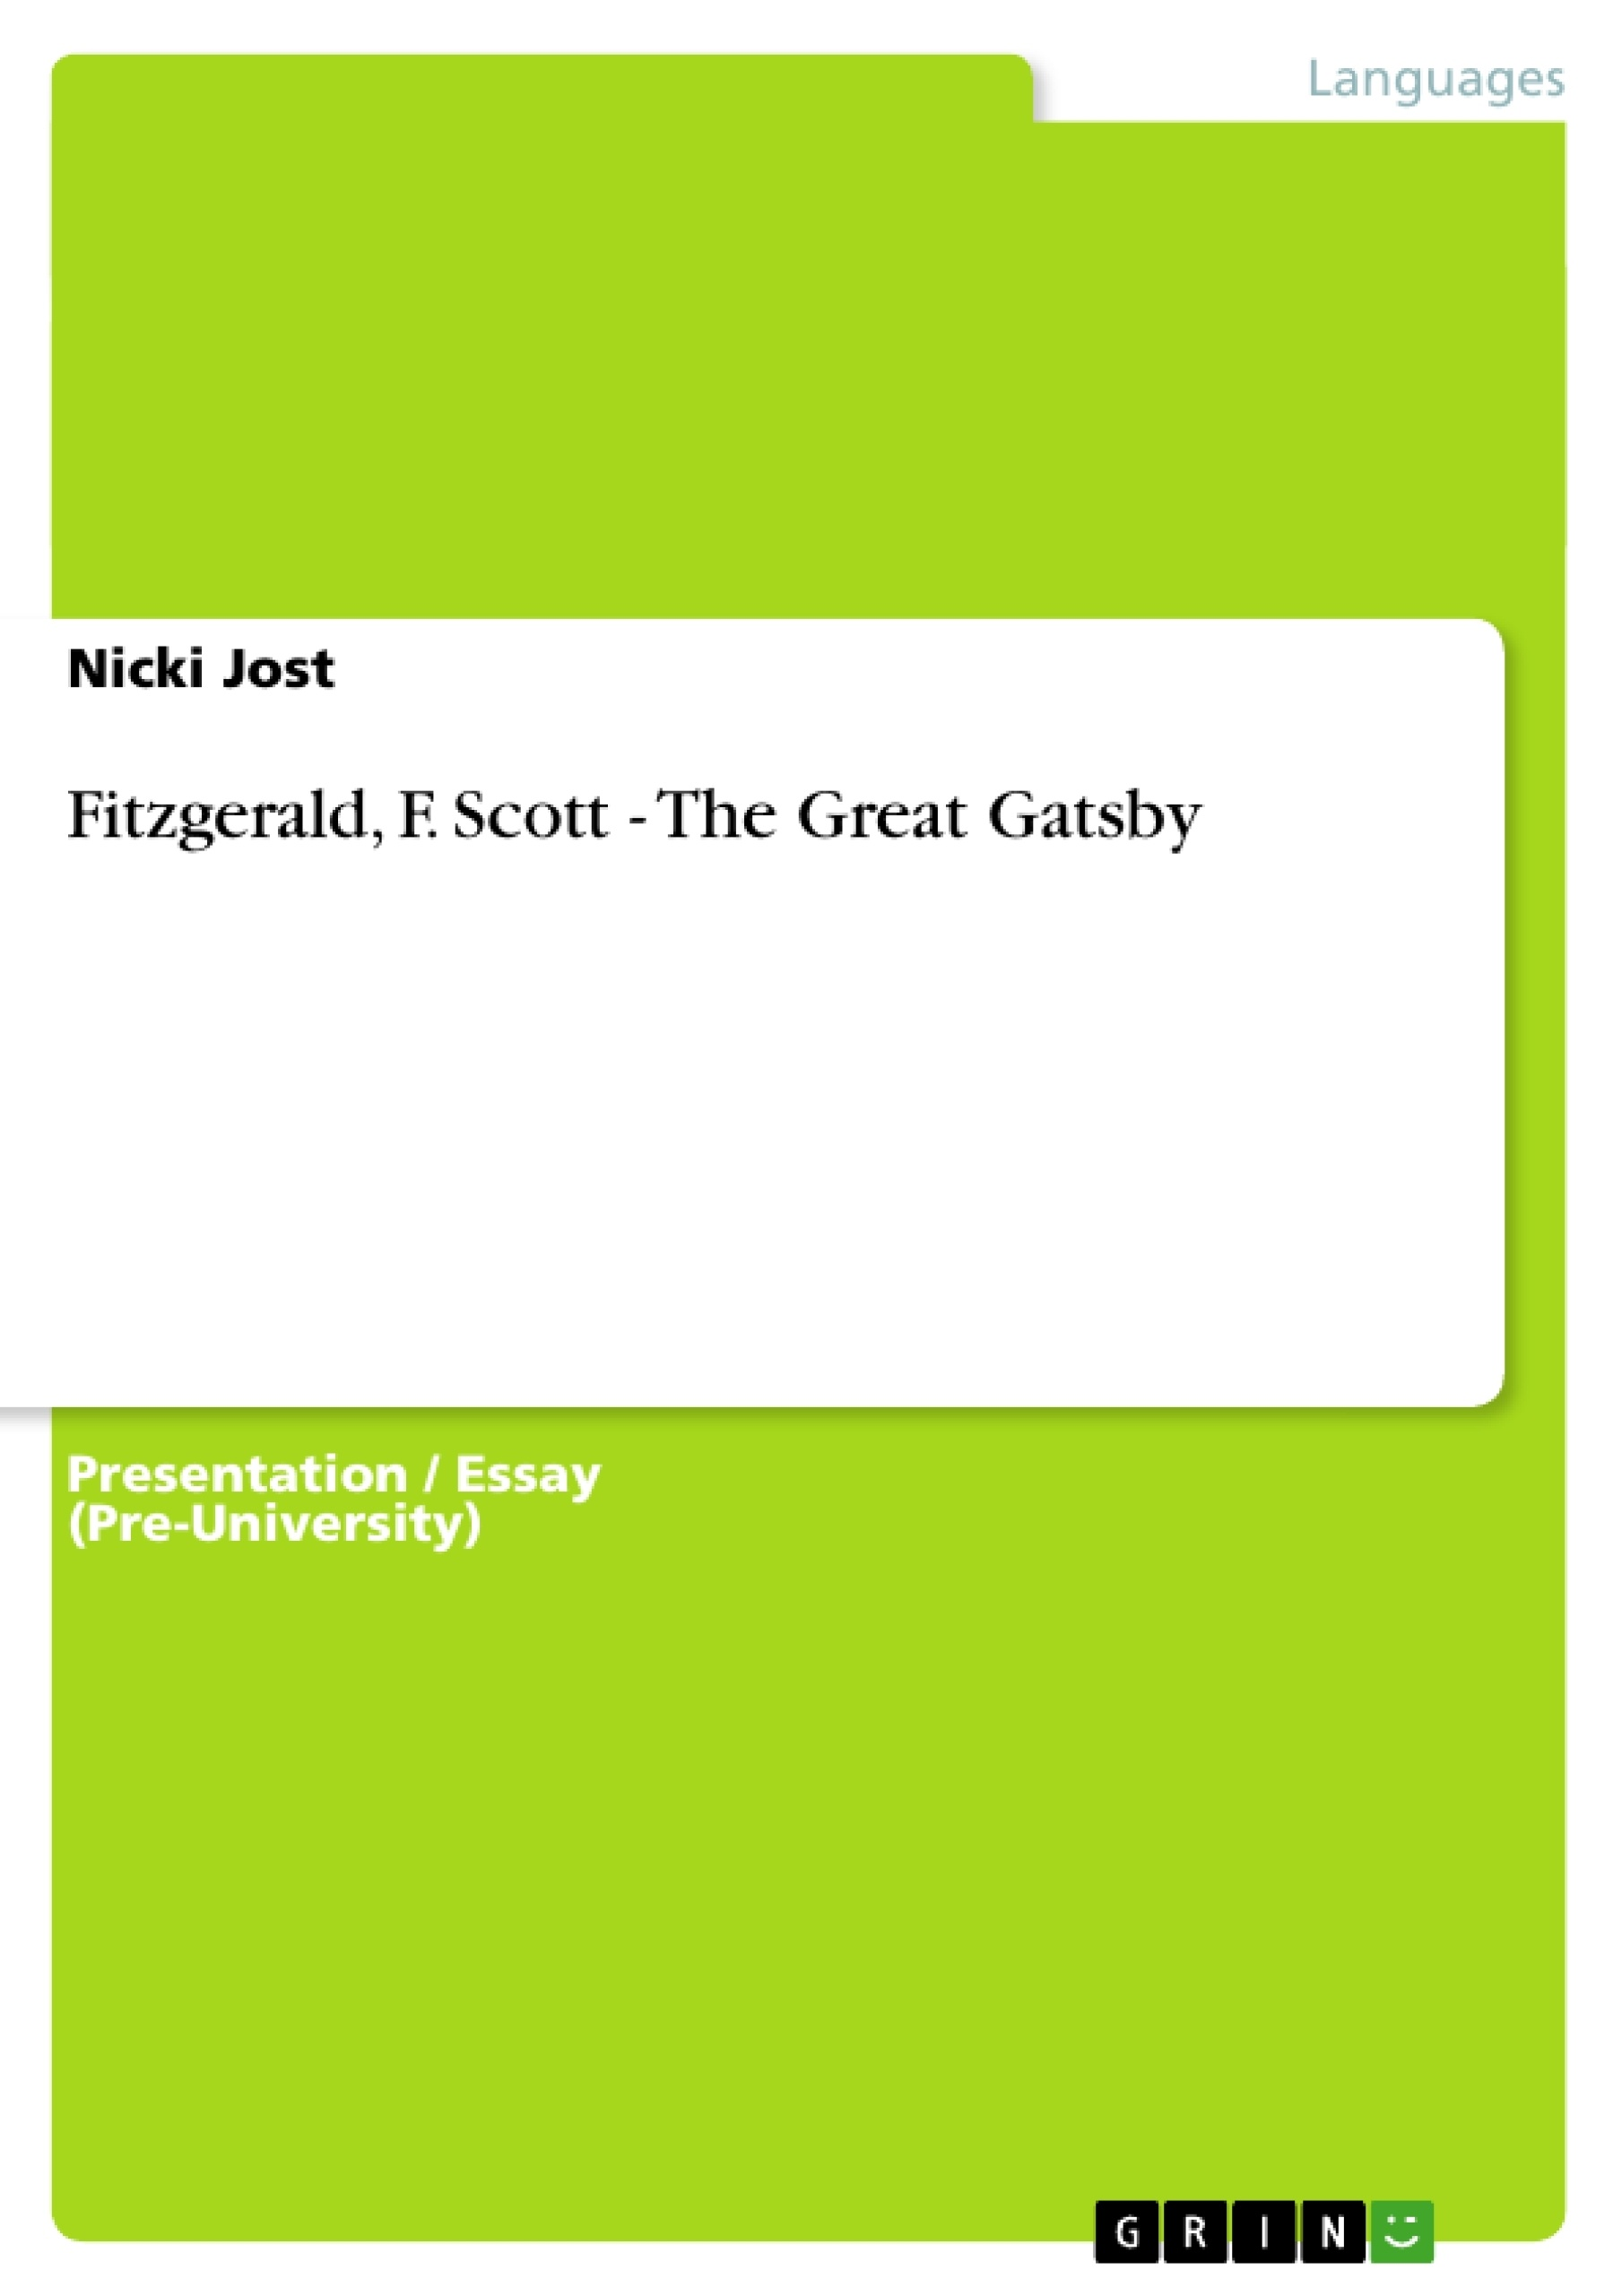 essay symbols great gatsby symbols and imagery the great gatsby chapter the great gatsby chapter in the great gatsby fitzgerald